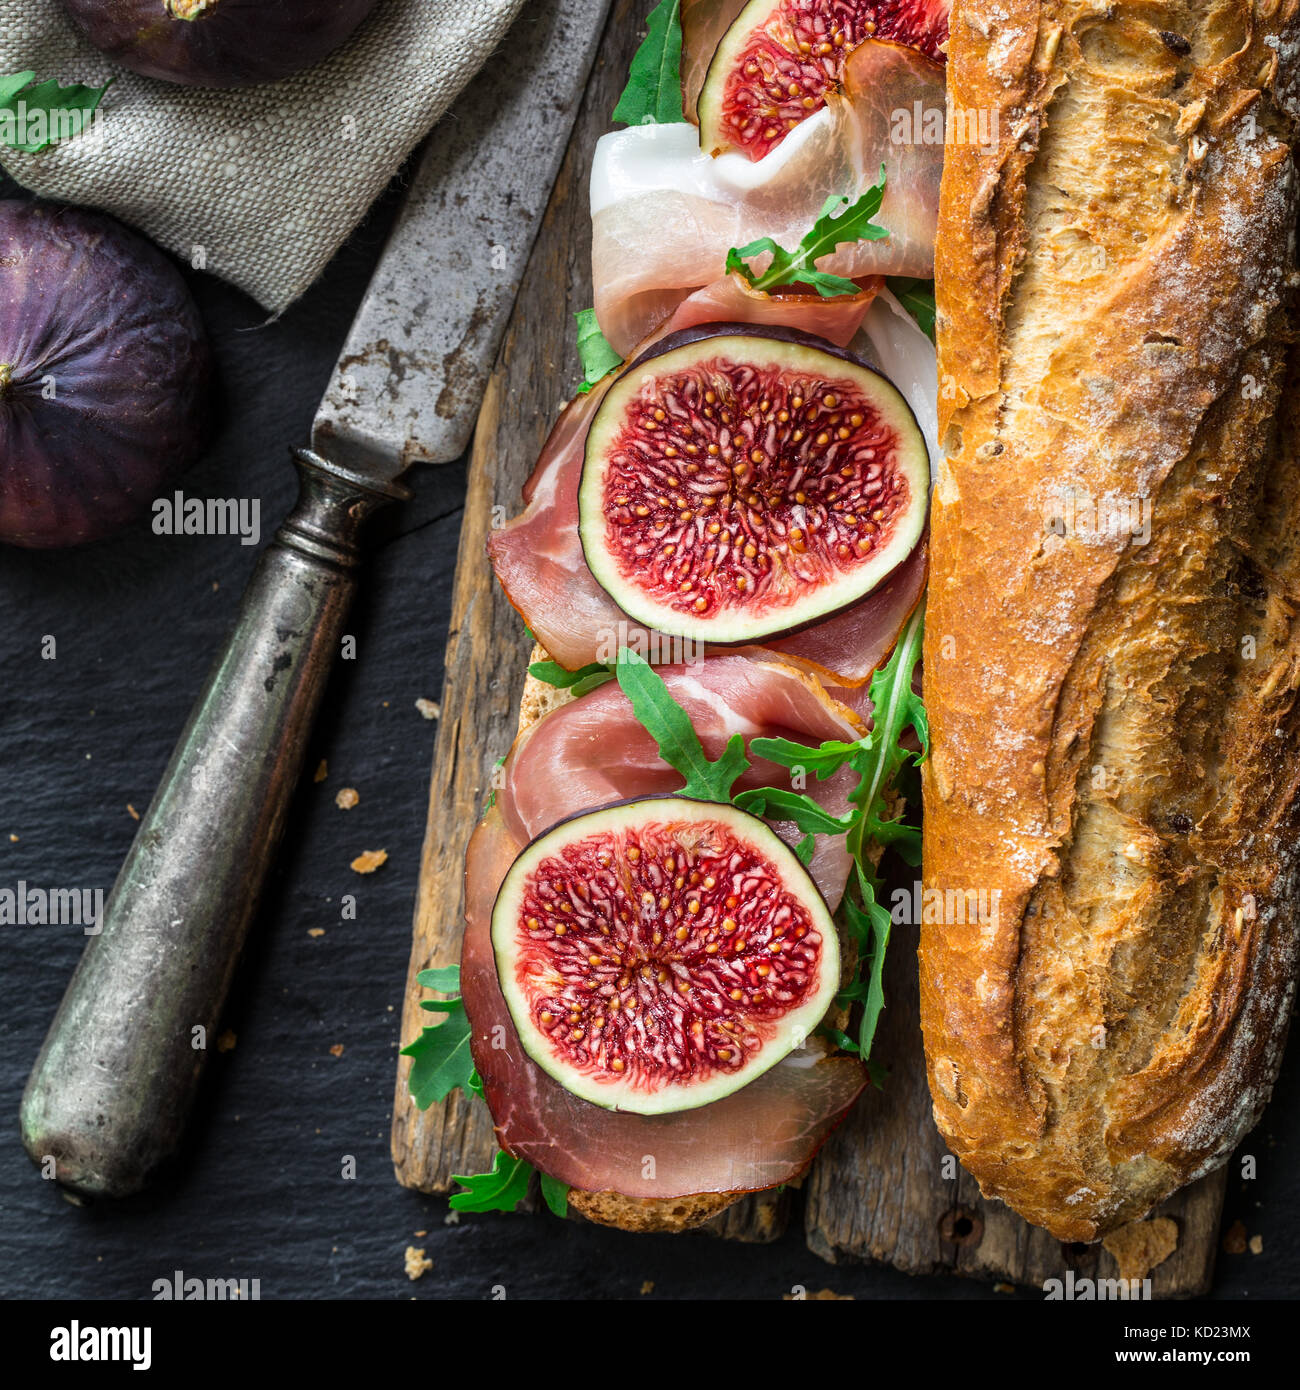 Sandwich with figs and prosciutto - Stock Image